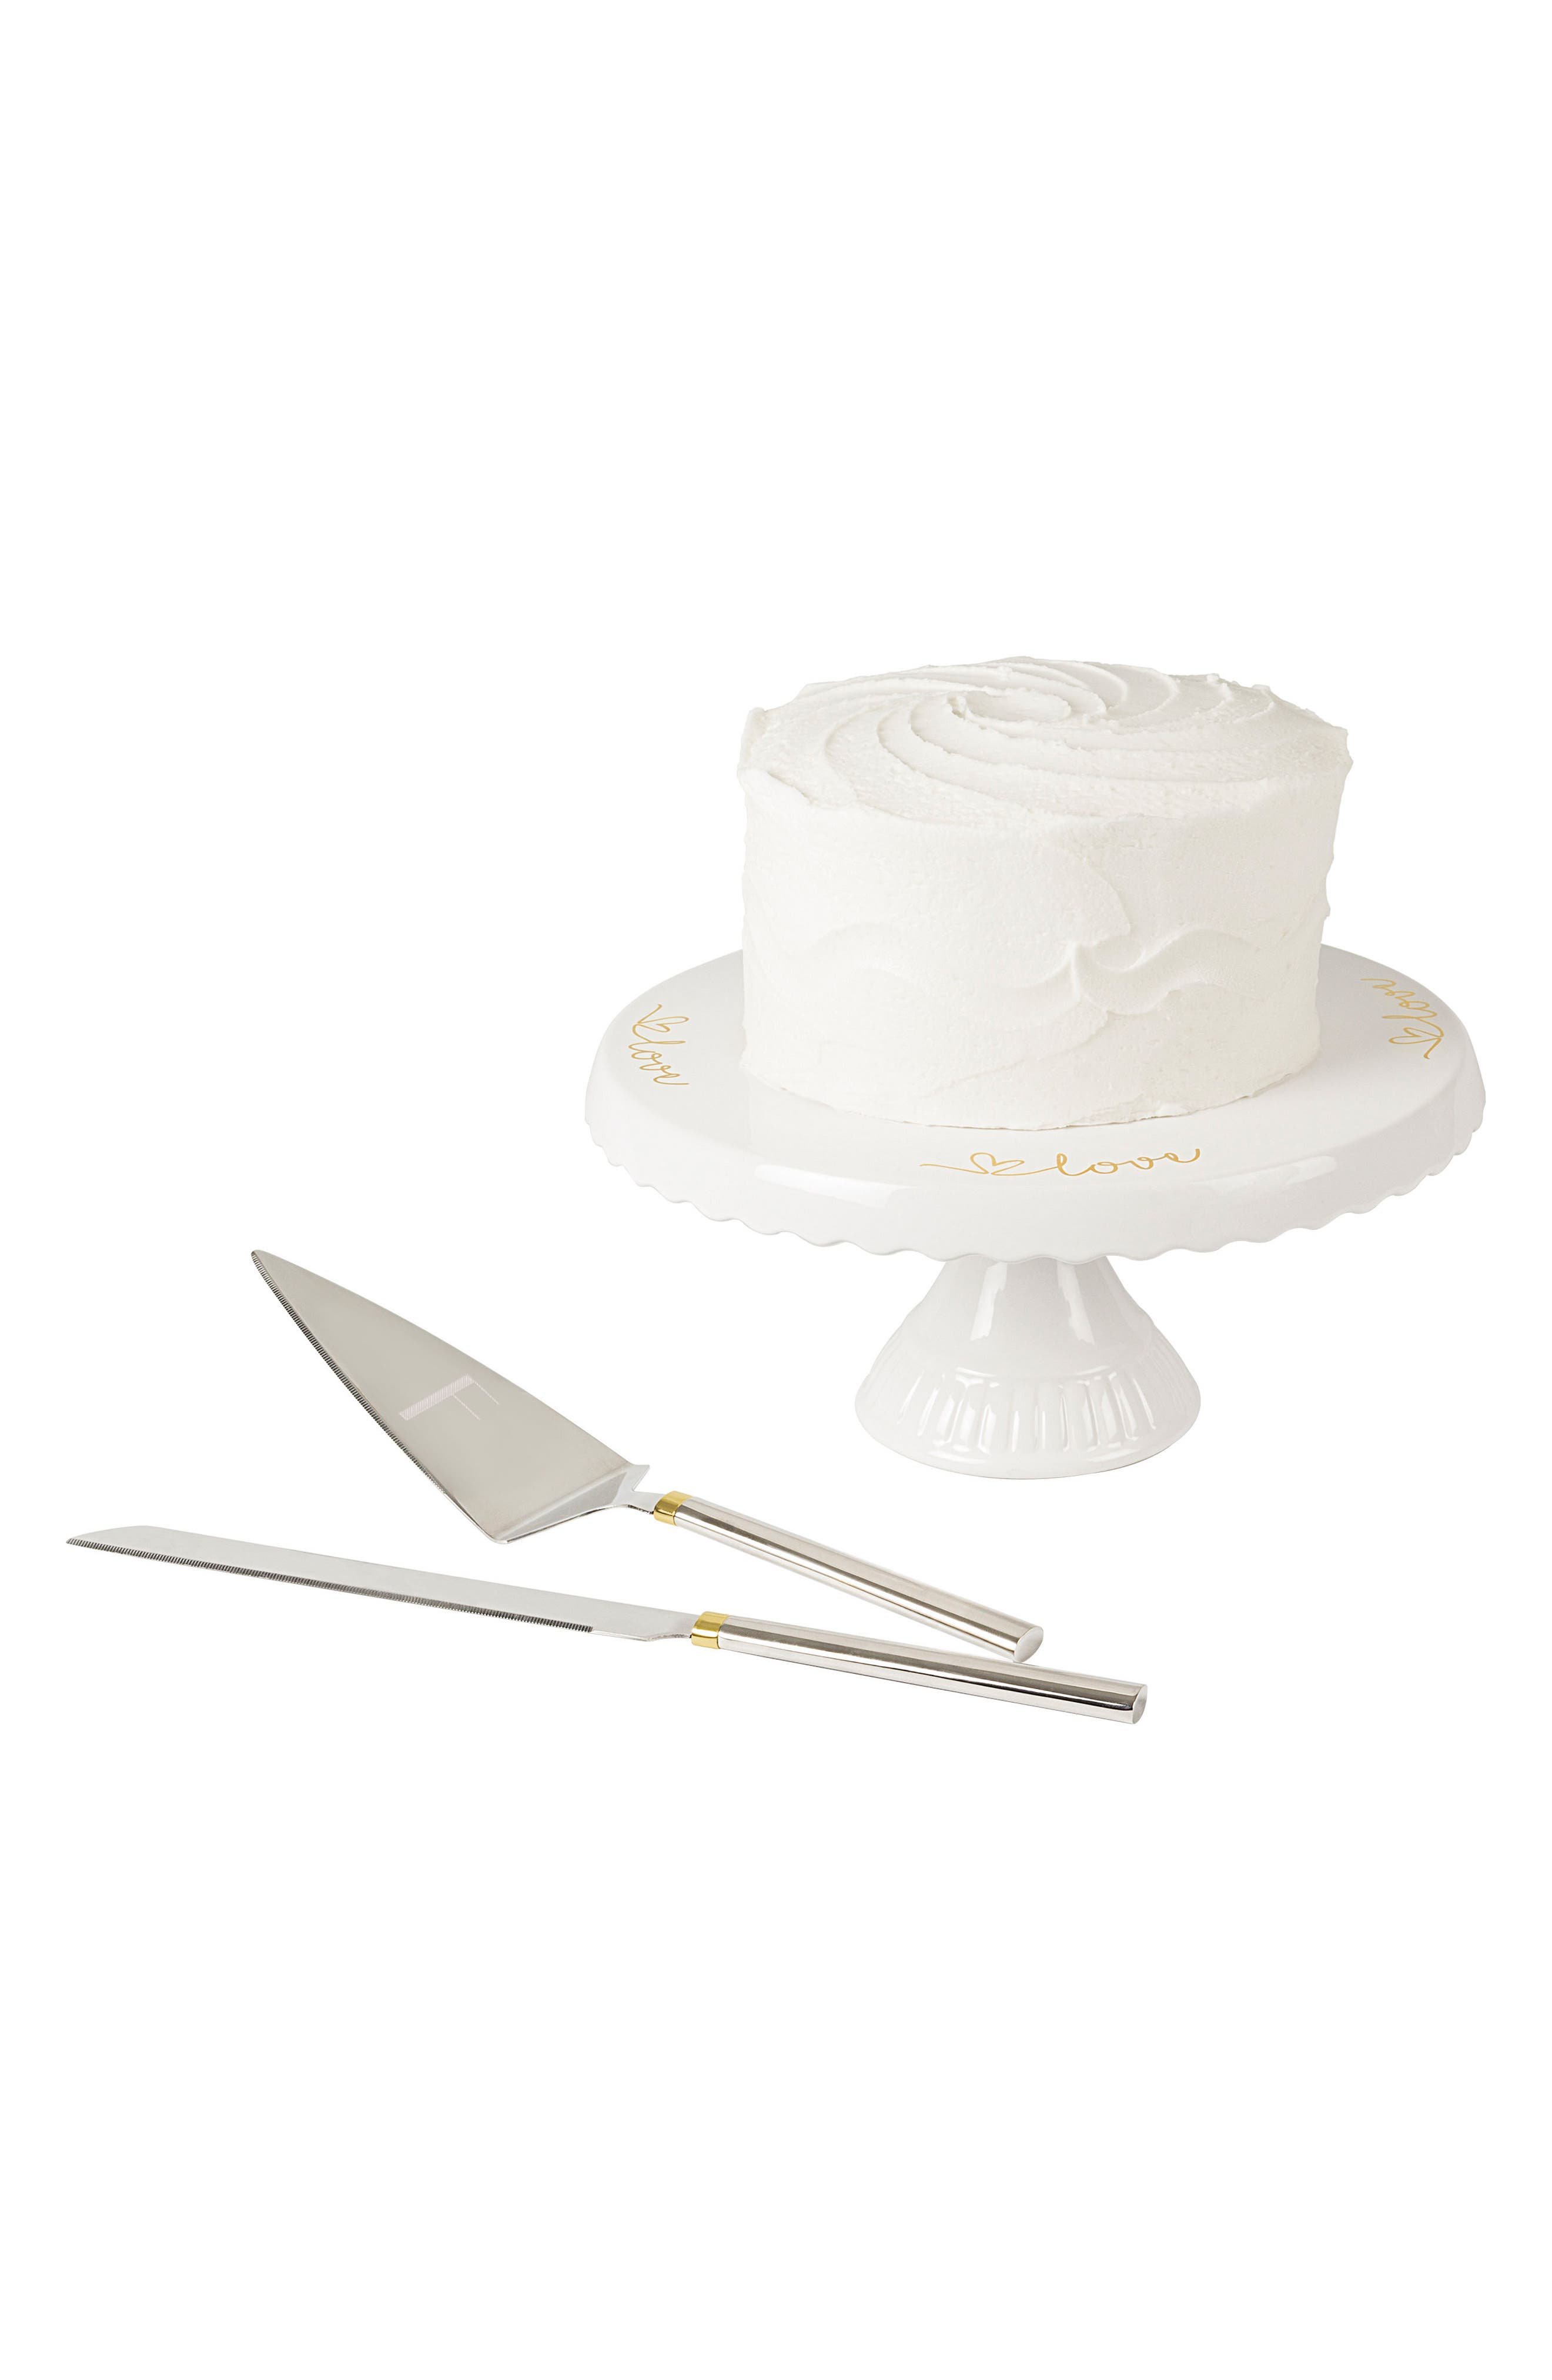 Love Monogram Cake Stand & Server Set,                             Main thumbnail 7, color,